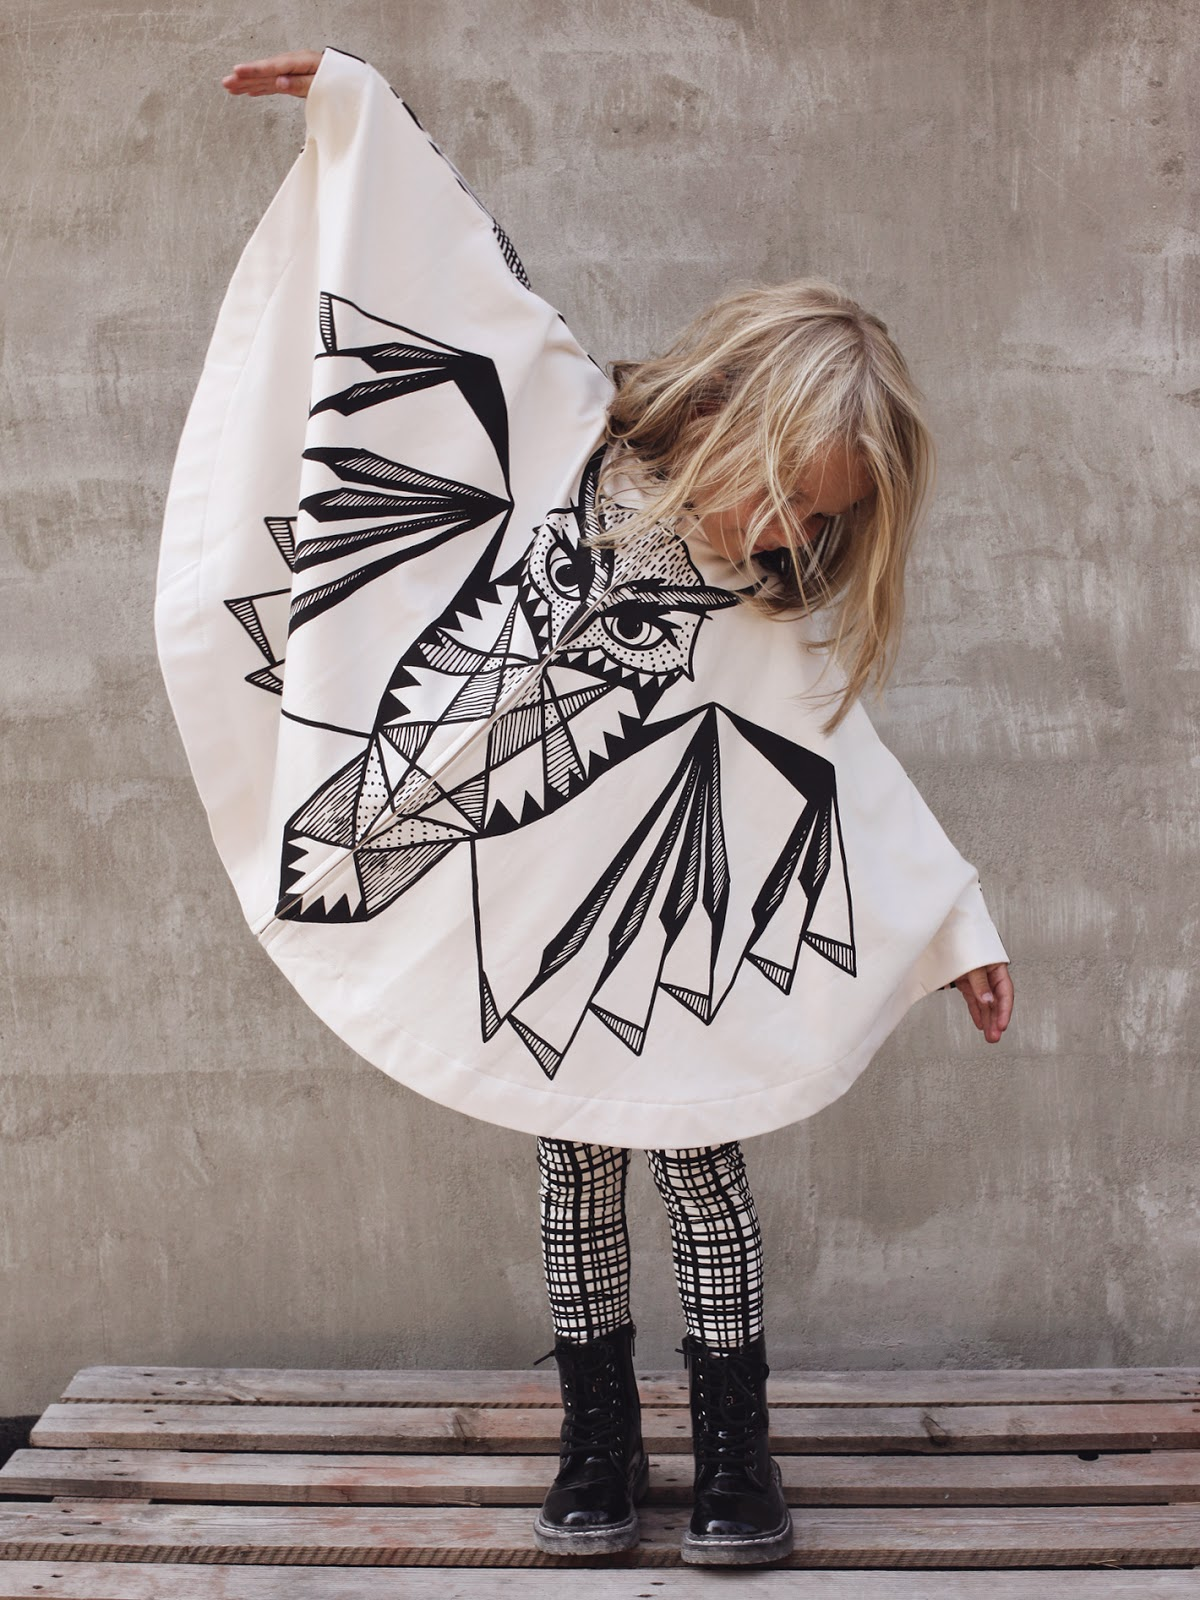 Mainio Clothing - 7 cool kidswear brands that rocked 2014